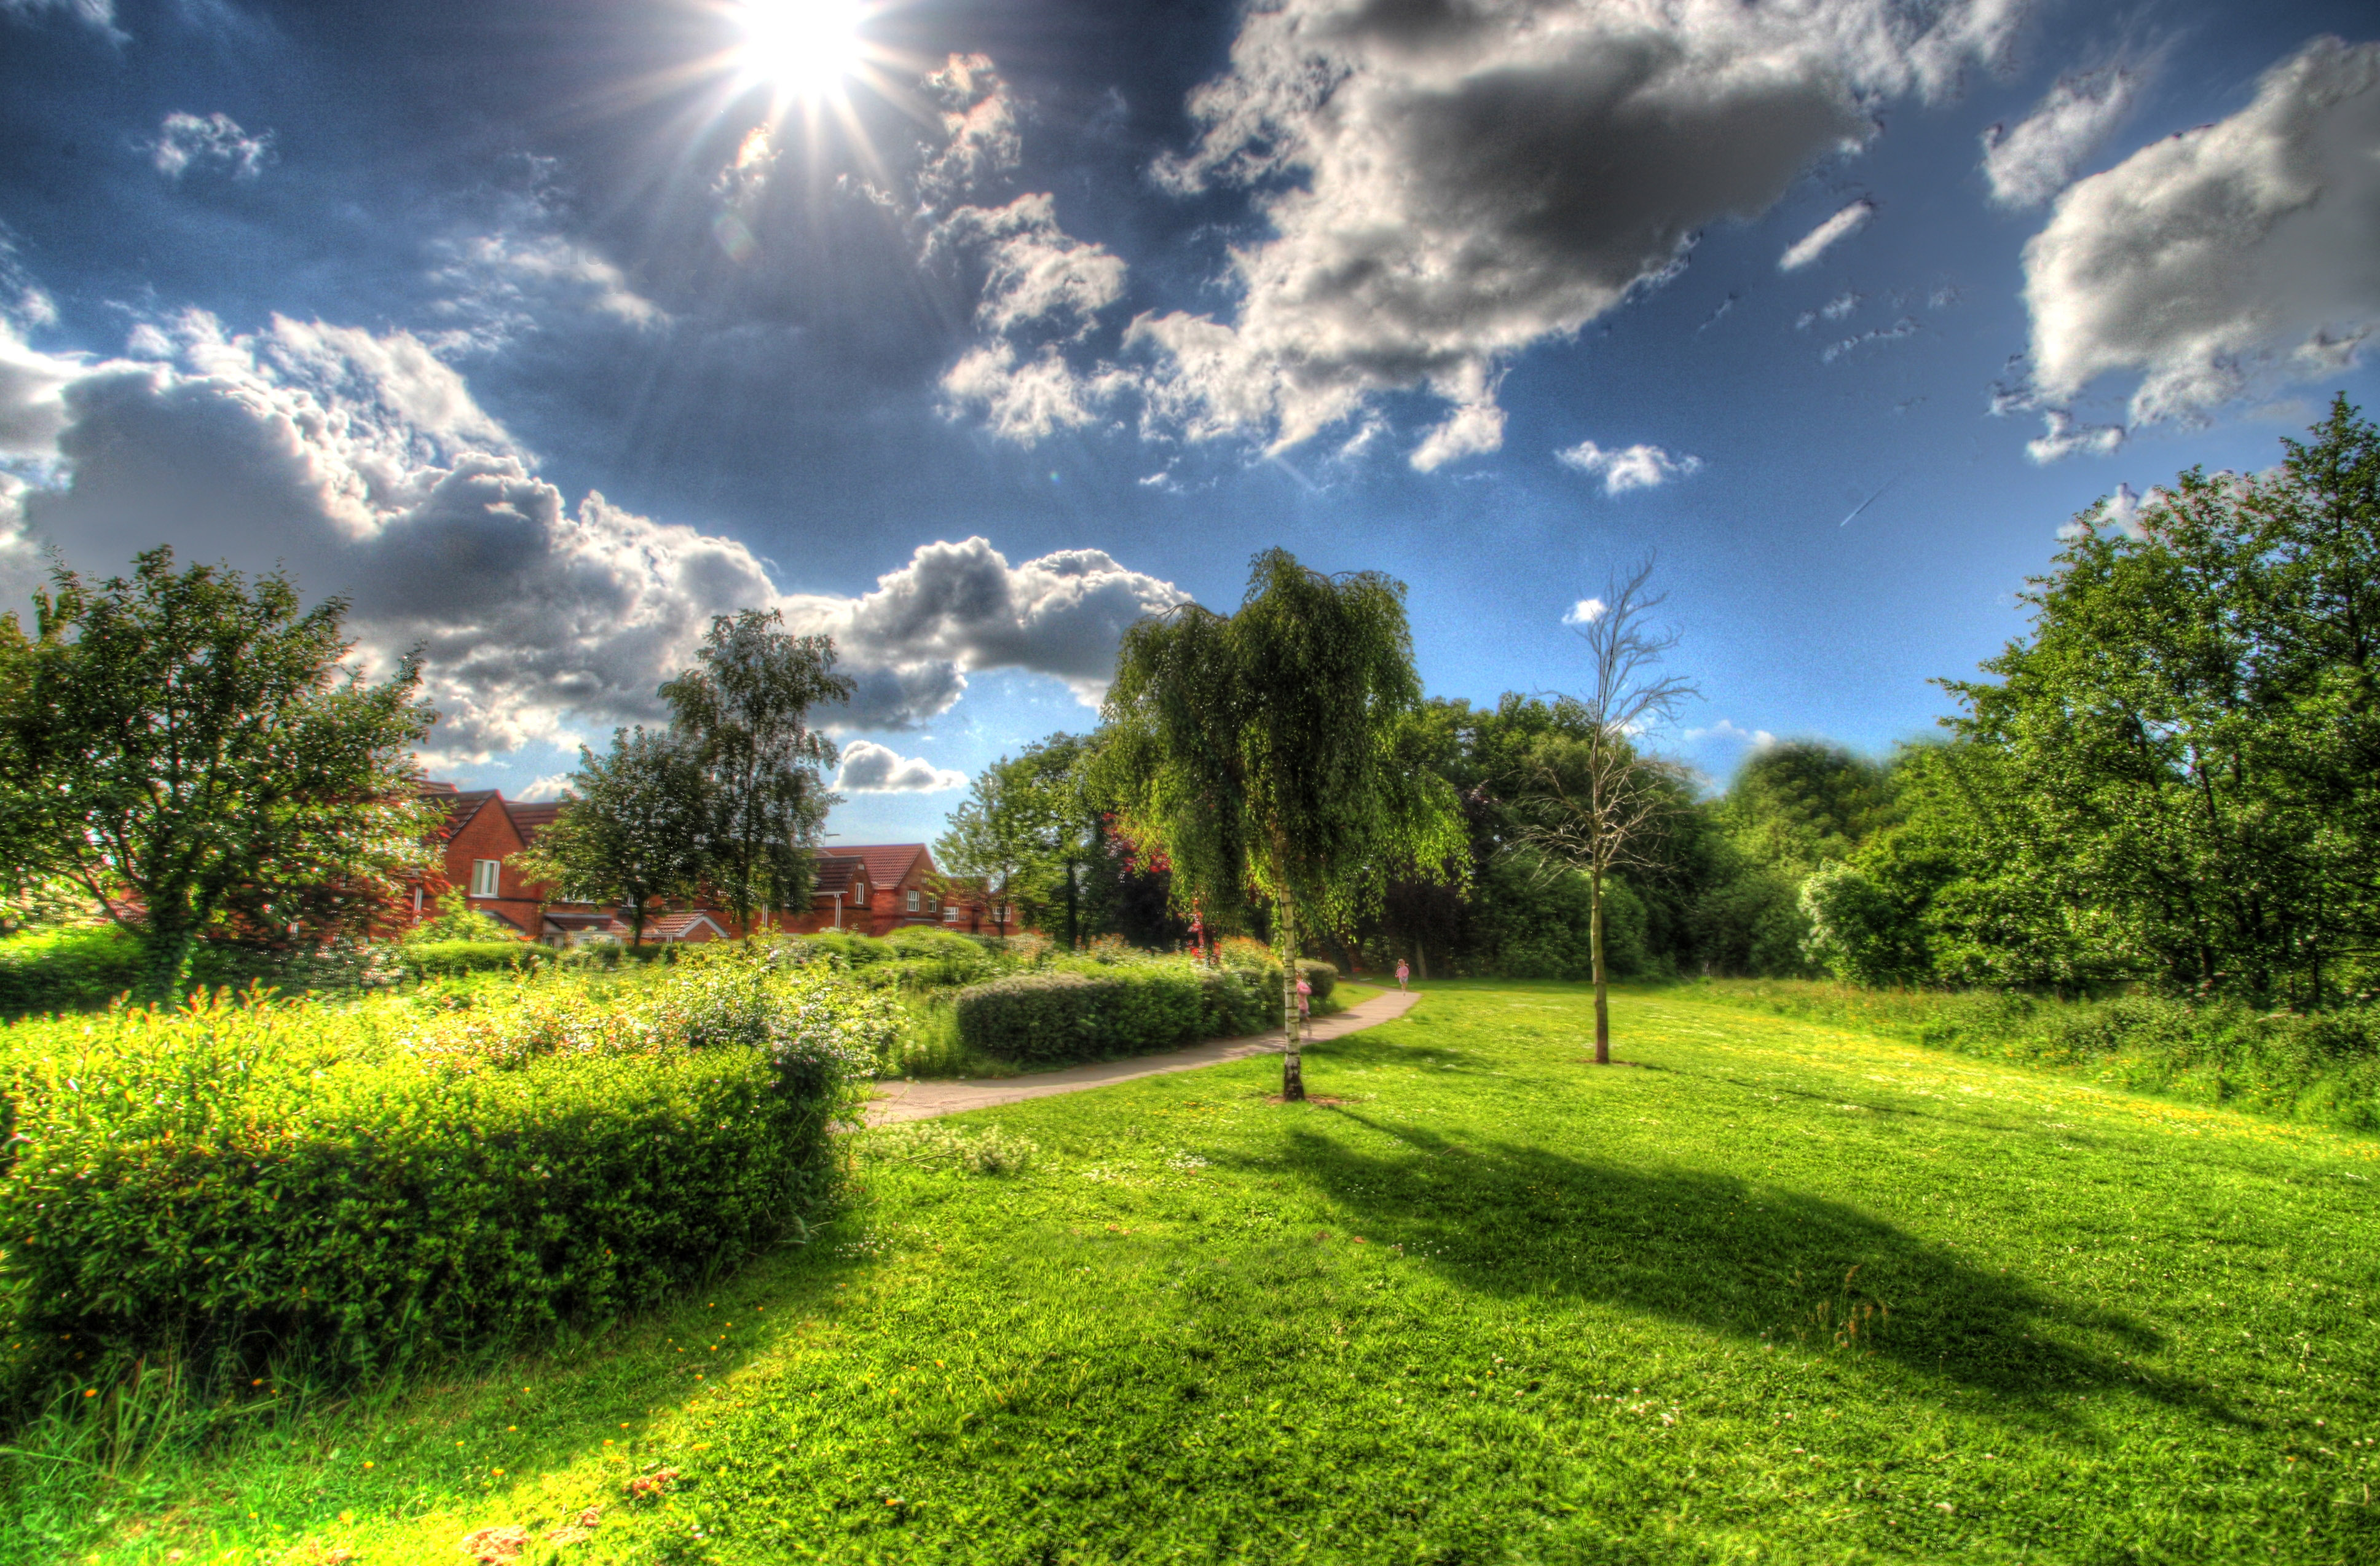 HDR Landscape Photography